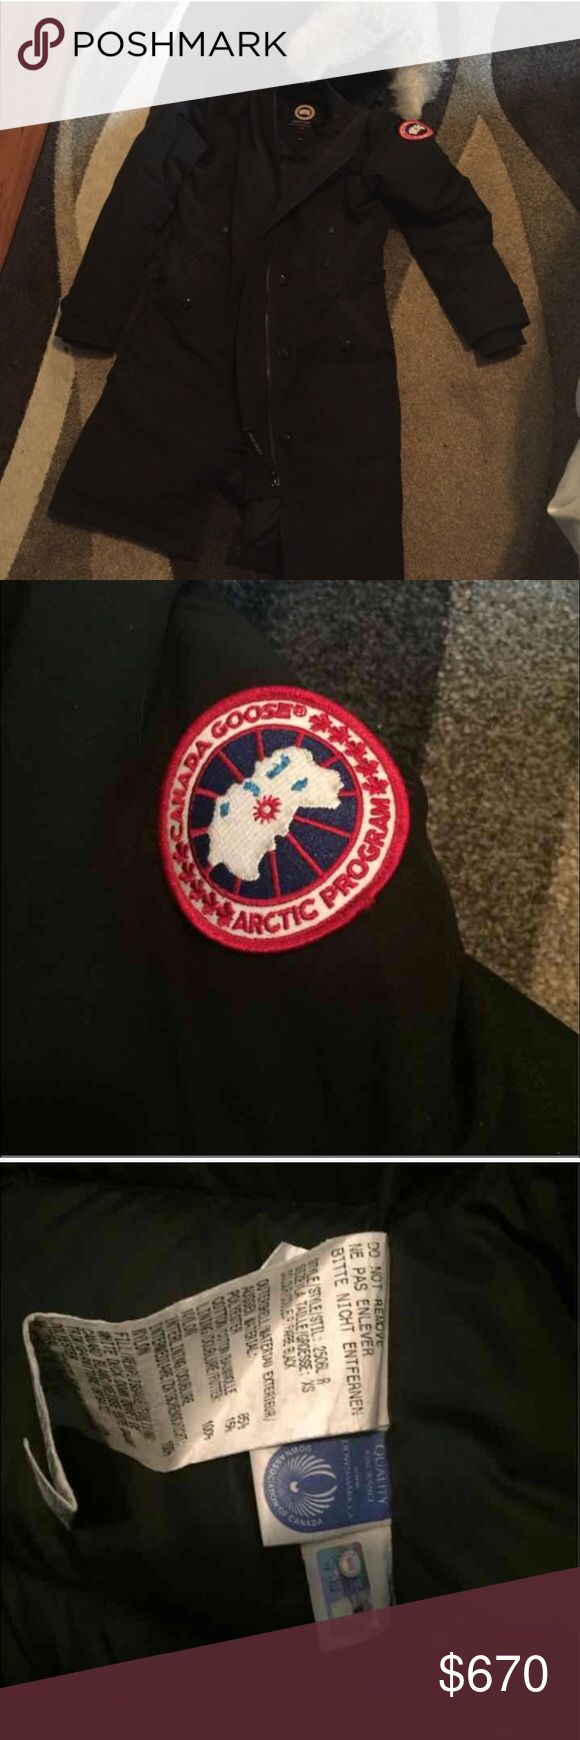 Canada Goose Kensington Black XS Relisting, couldn't ship it out on time because was out of town. Used but still very good condition. Canada Goose Jackets & Coats